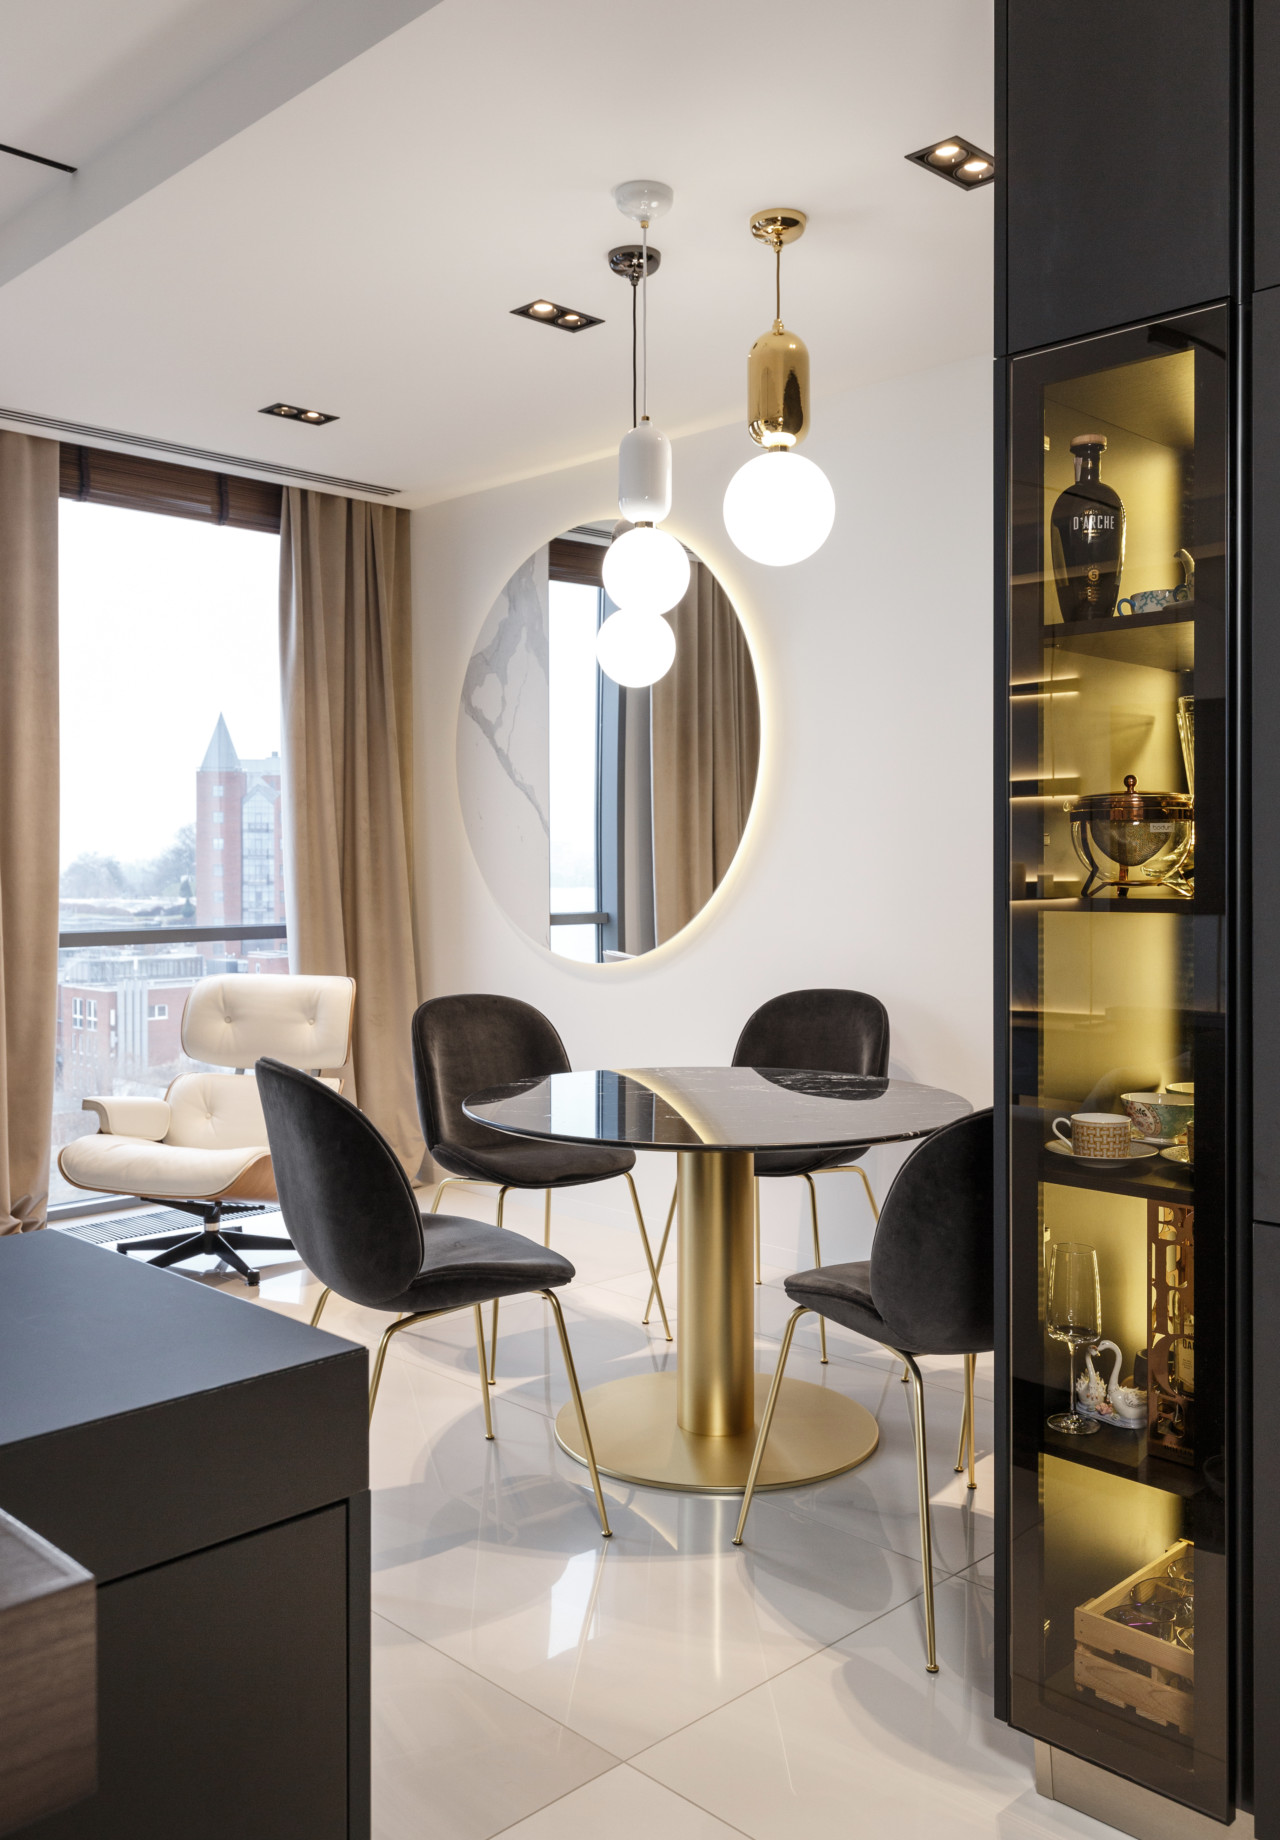 The dining table is very sleek and elegant, featuring a circular pedestal base and a round top